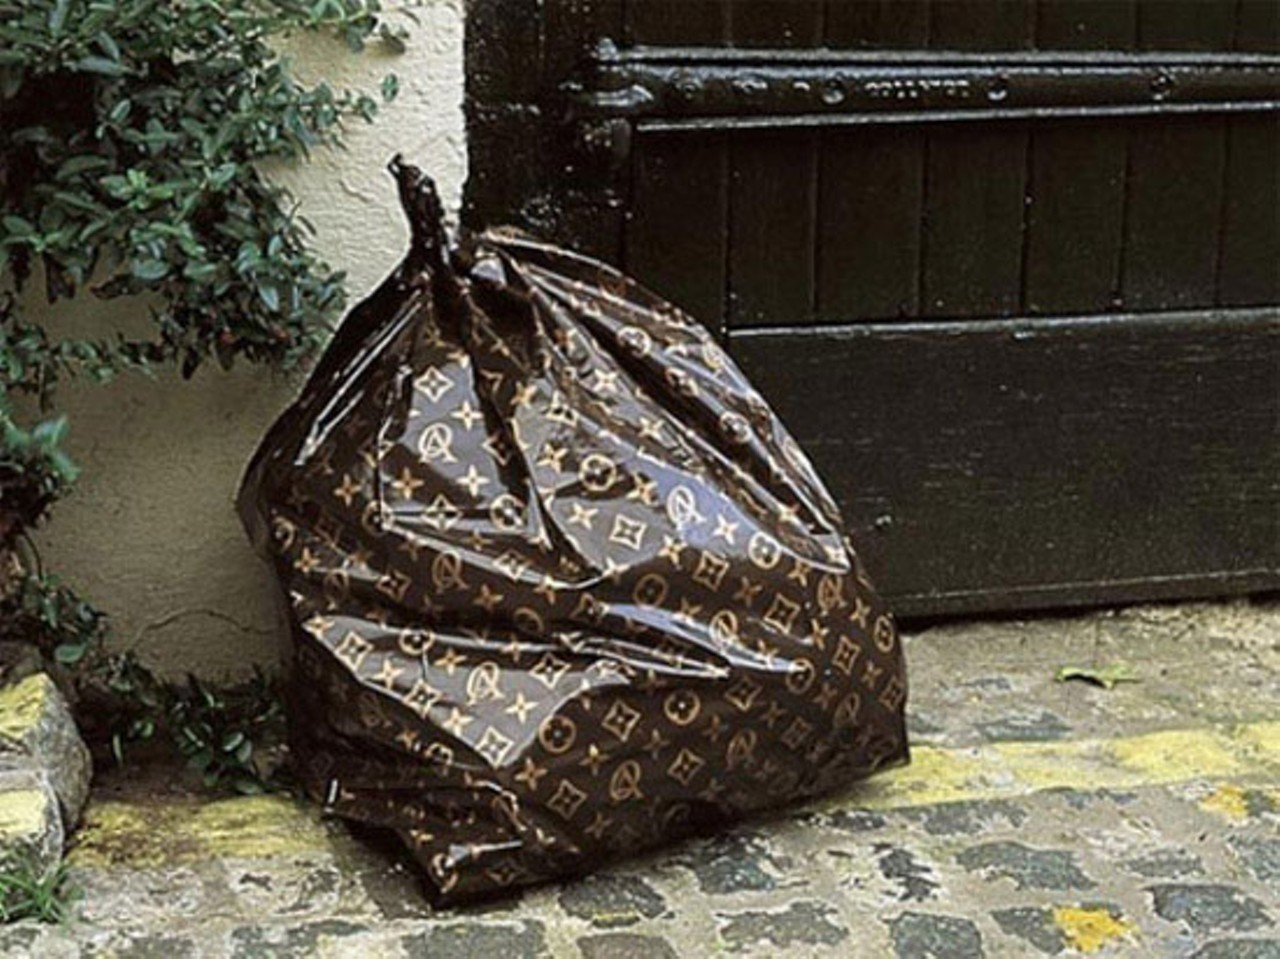 Louis Vuitton Trash Bags Letter From The Editor Letter From The Editor Memphis